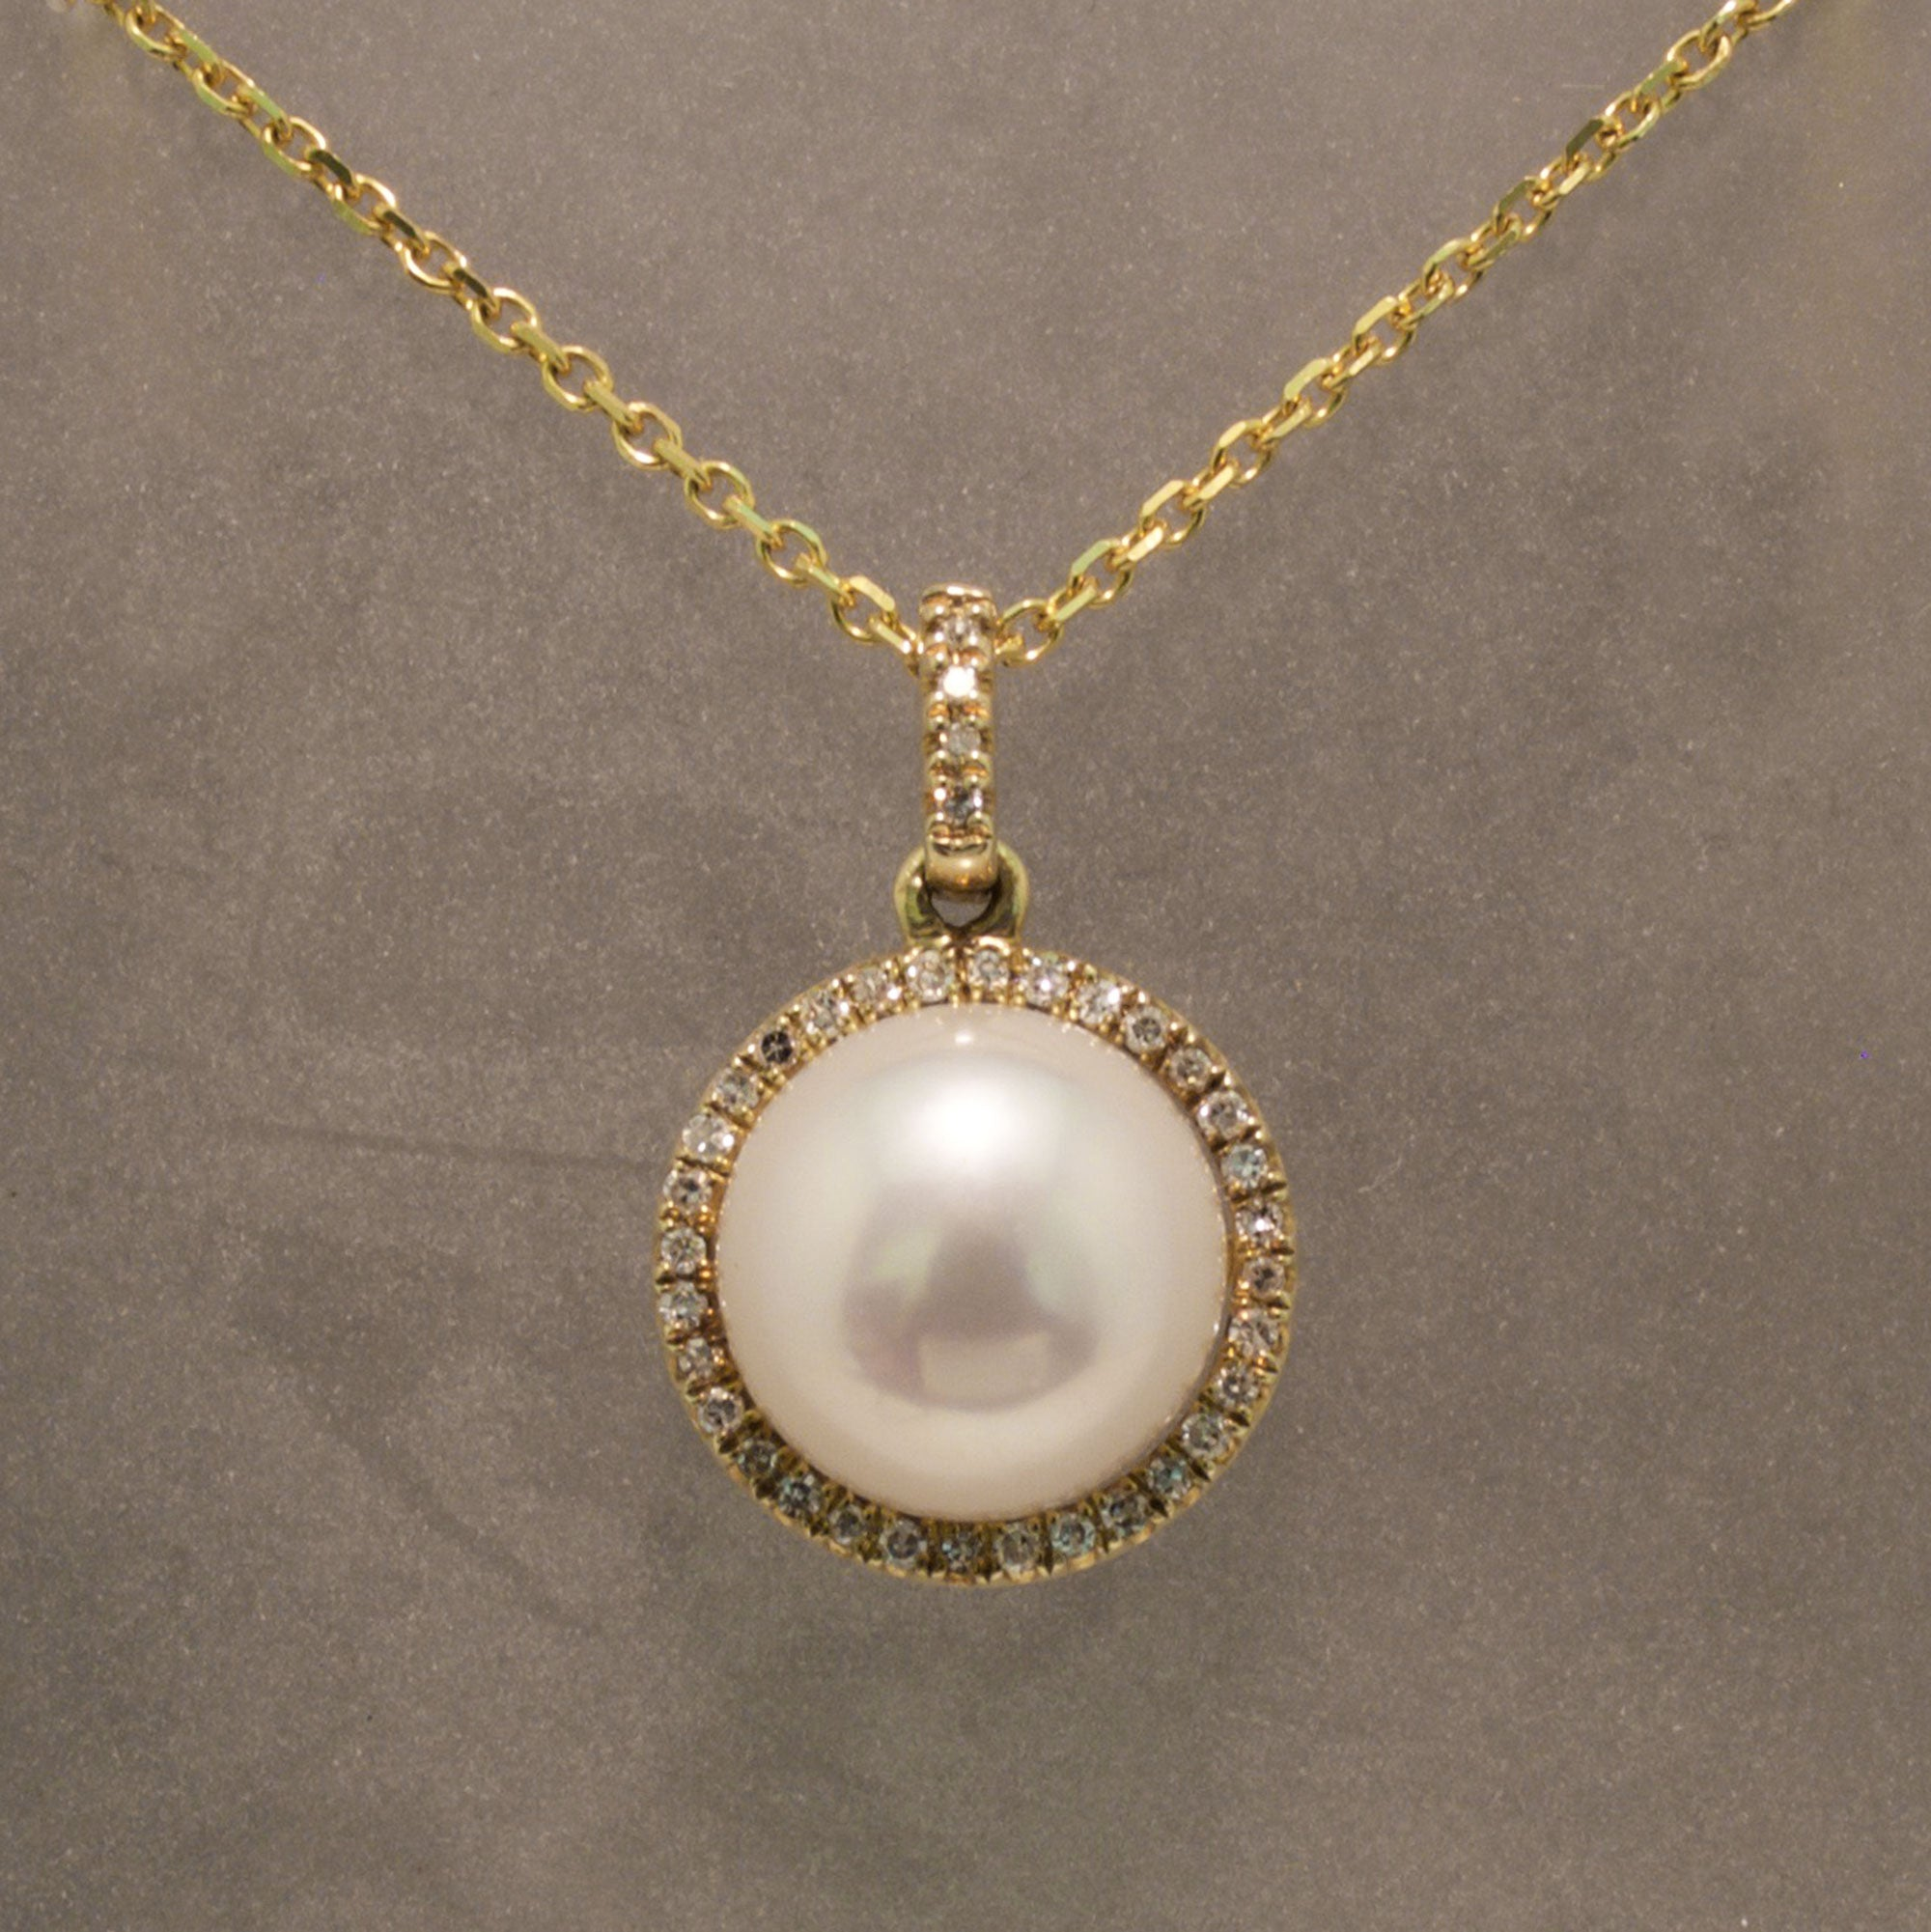 9f8e174875c18 14K Yellow Gold Pearl and Diamond Necklace